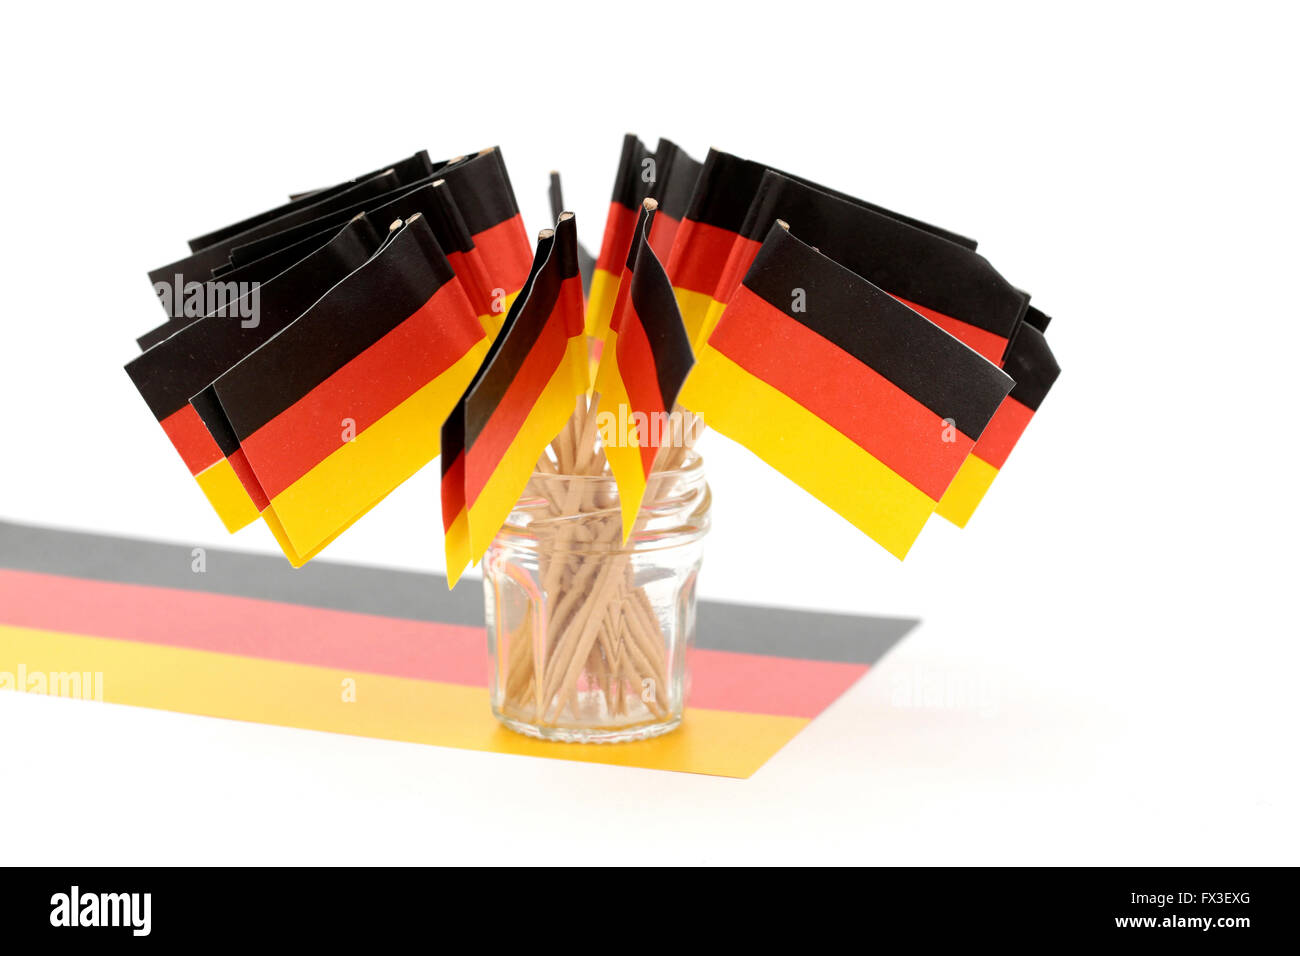 Little German flags on top of a German flag - Stock Image